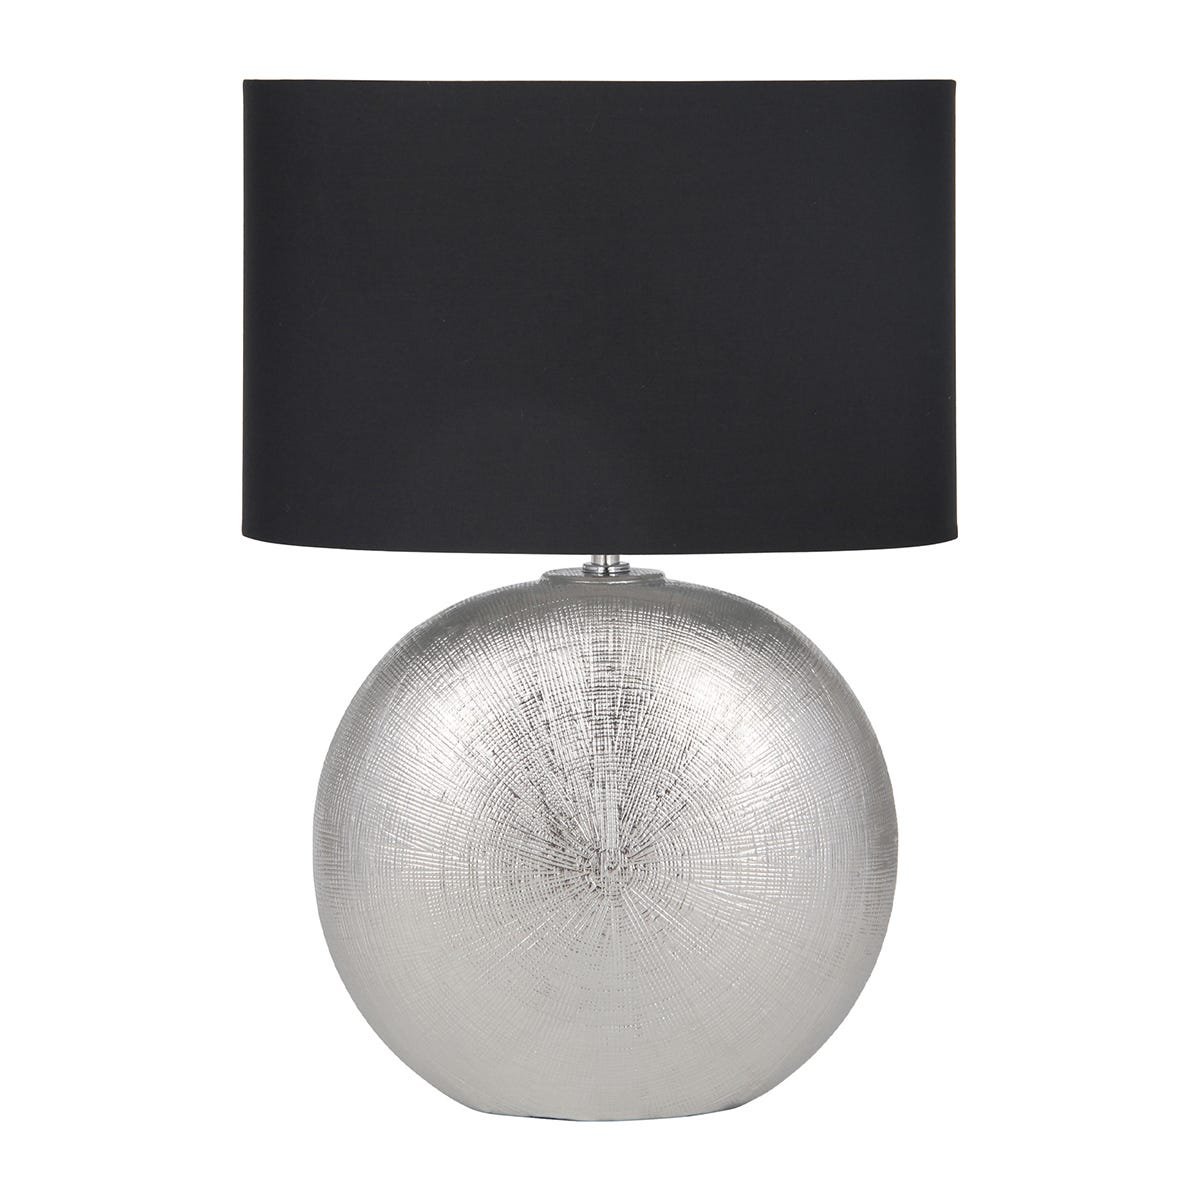 Silver Textured Ceramic Table Lamp